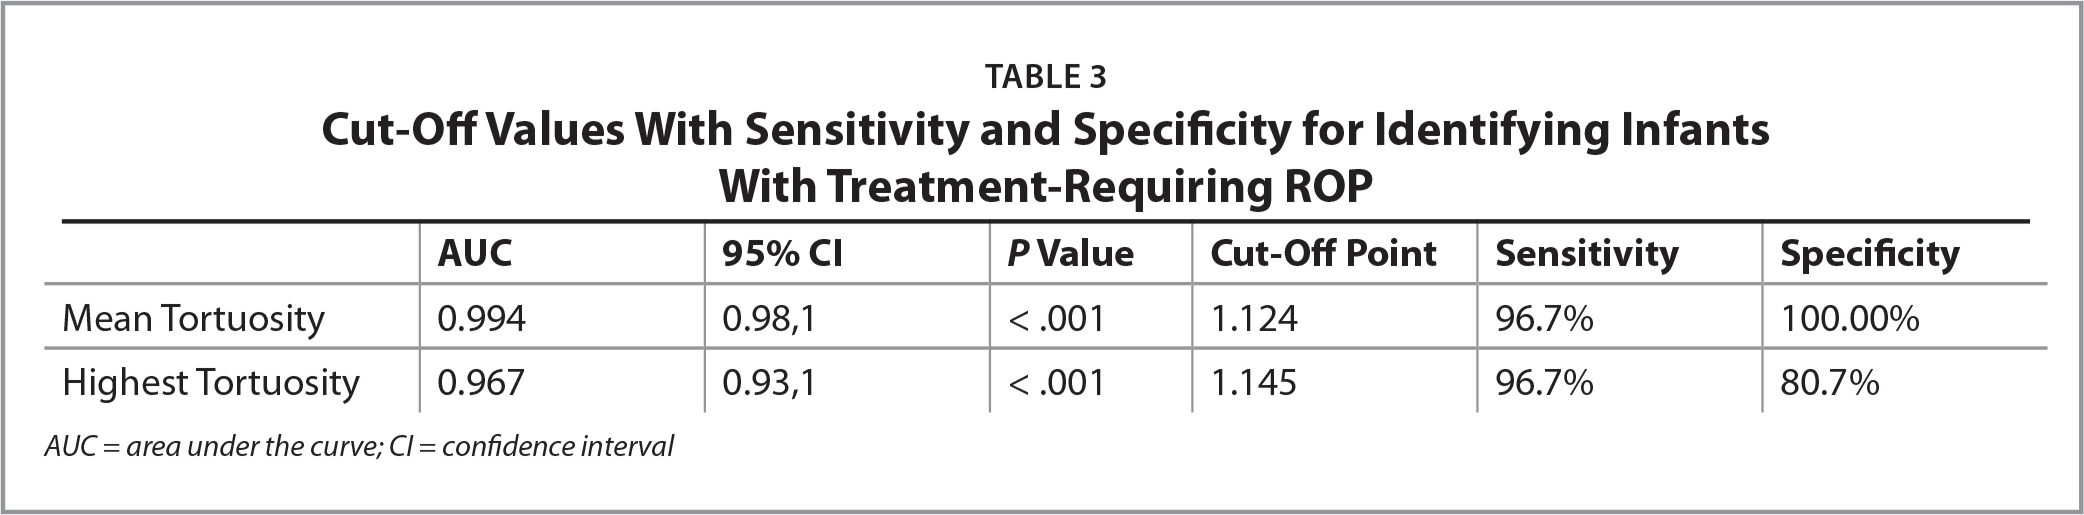 Cut-Off Values With Sensitivity and Specificity for Identifying Infants With Treatment-Requiring ROP